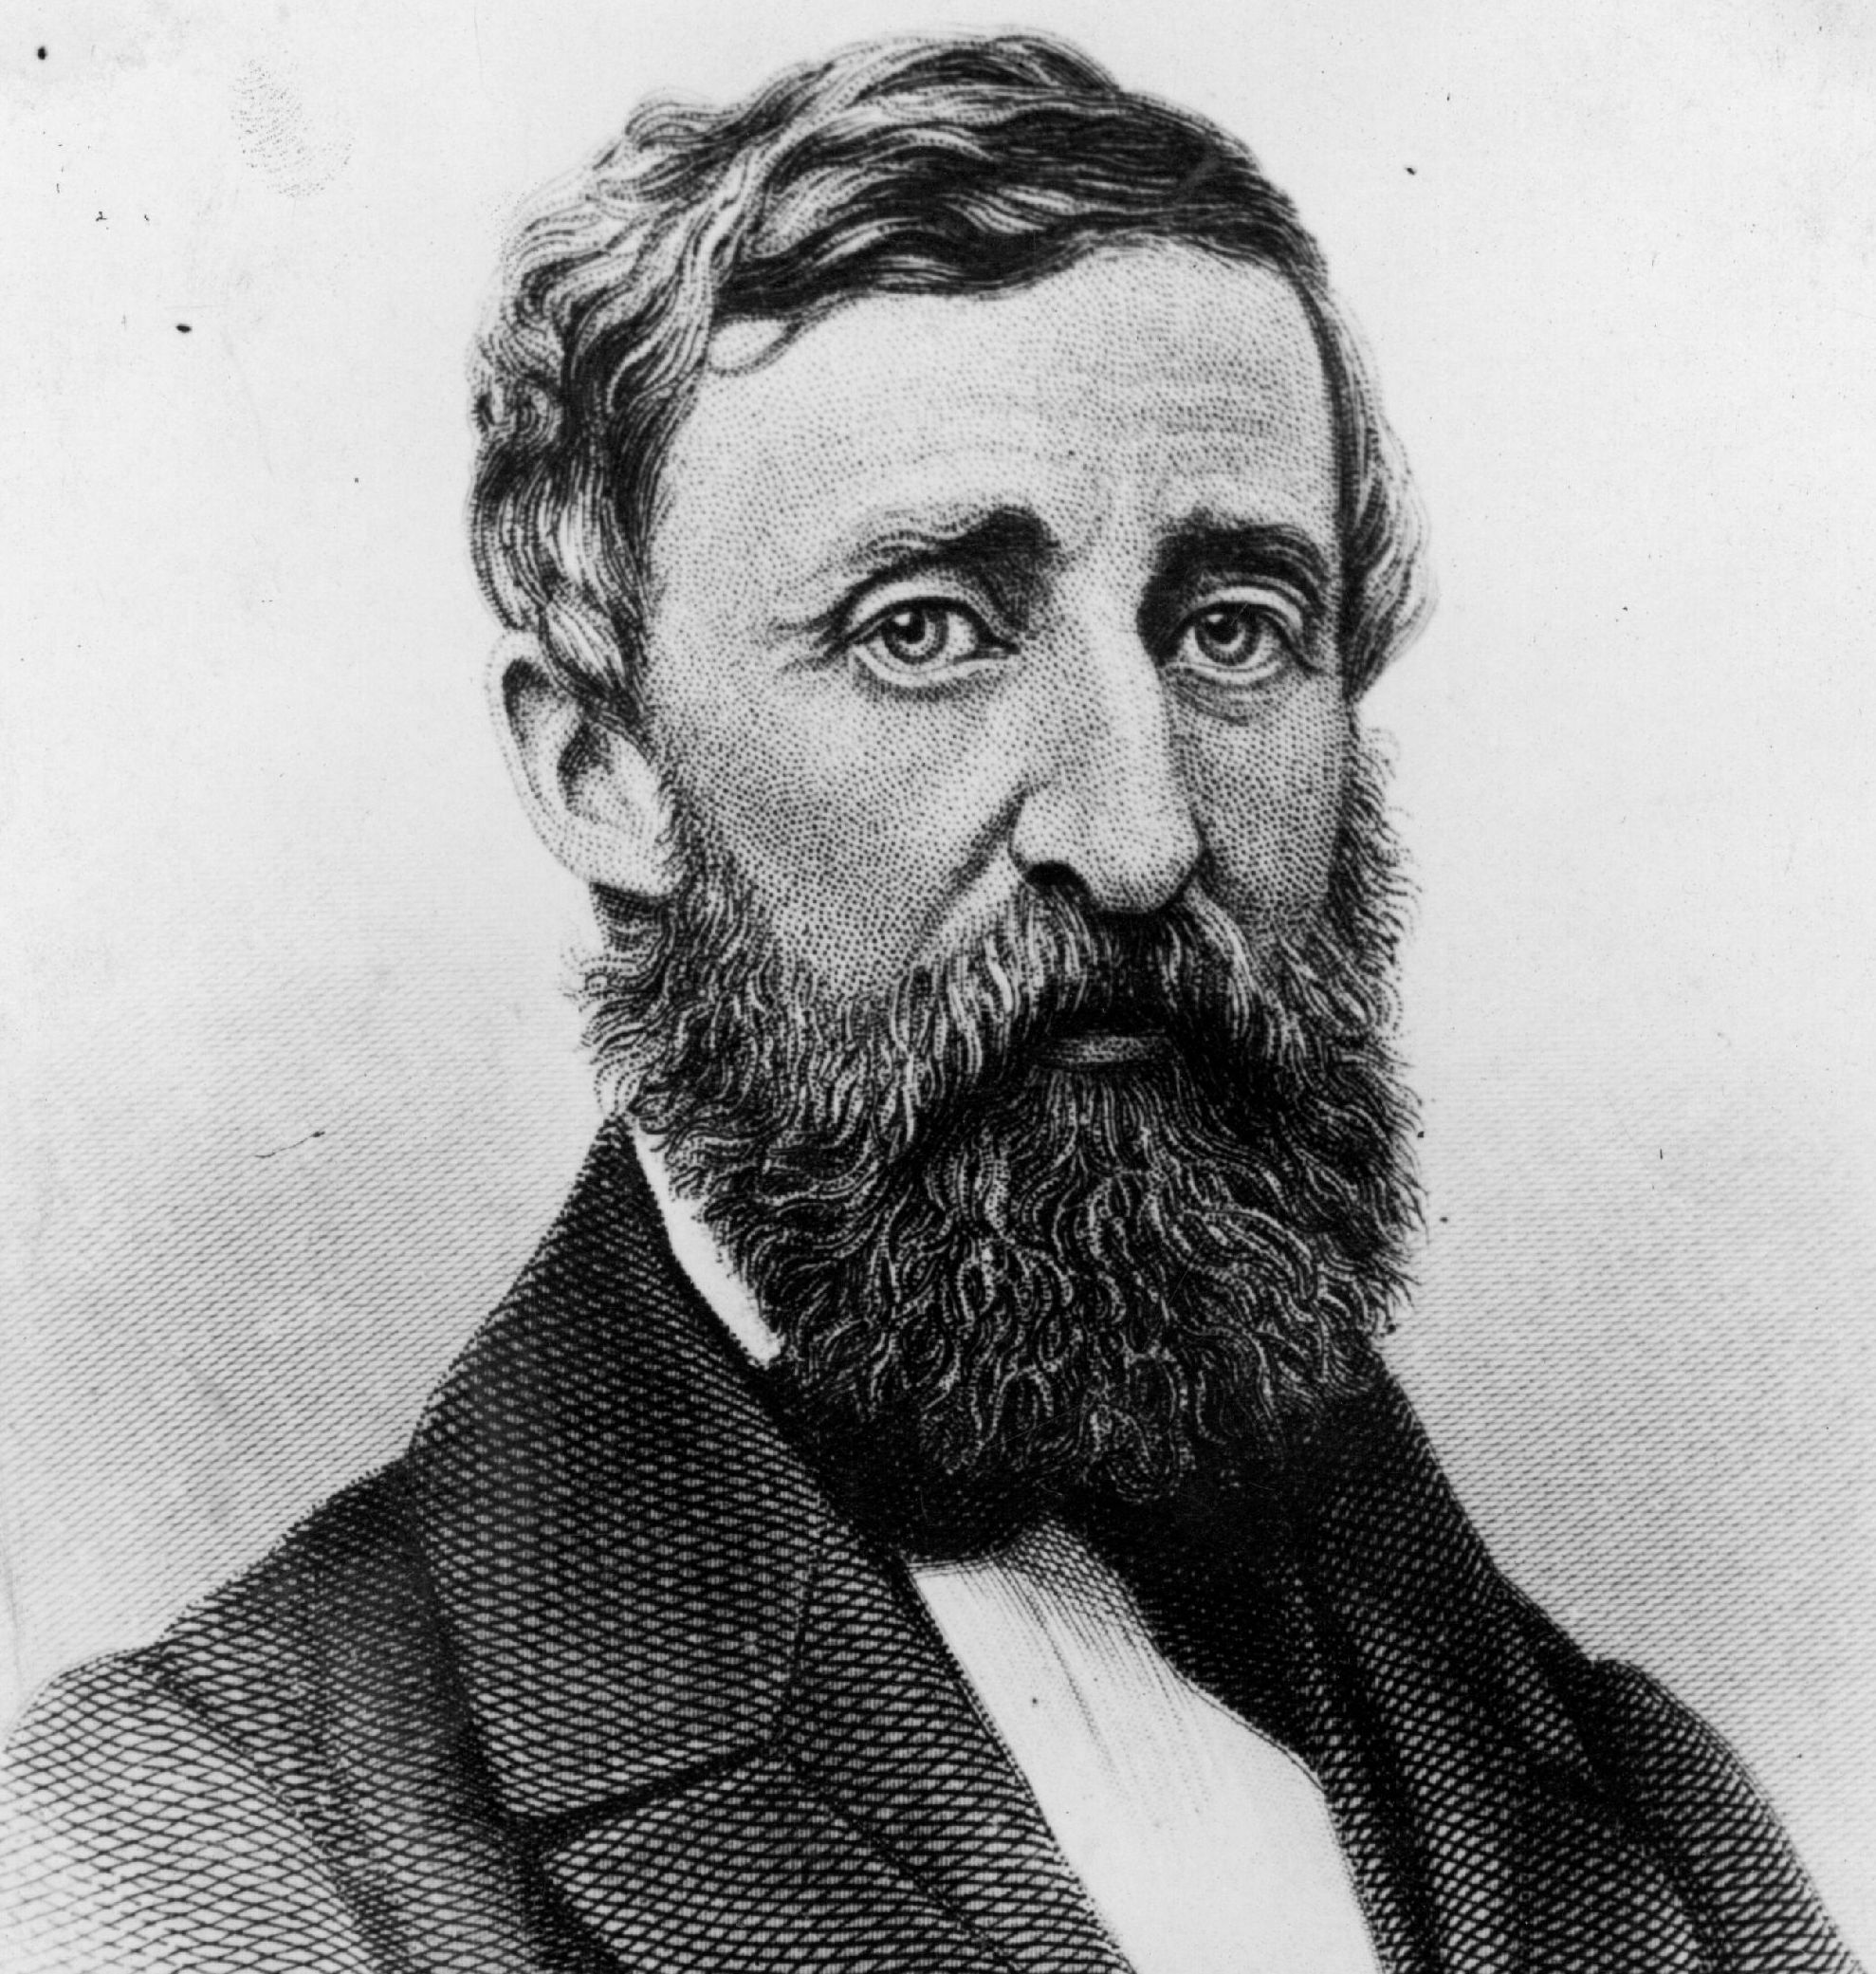 Thoreau on Fashion, Trends & Individuality | Keeper and Co.